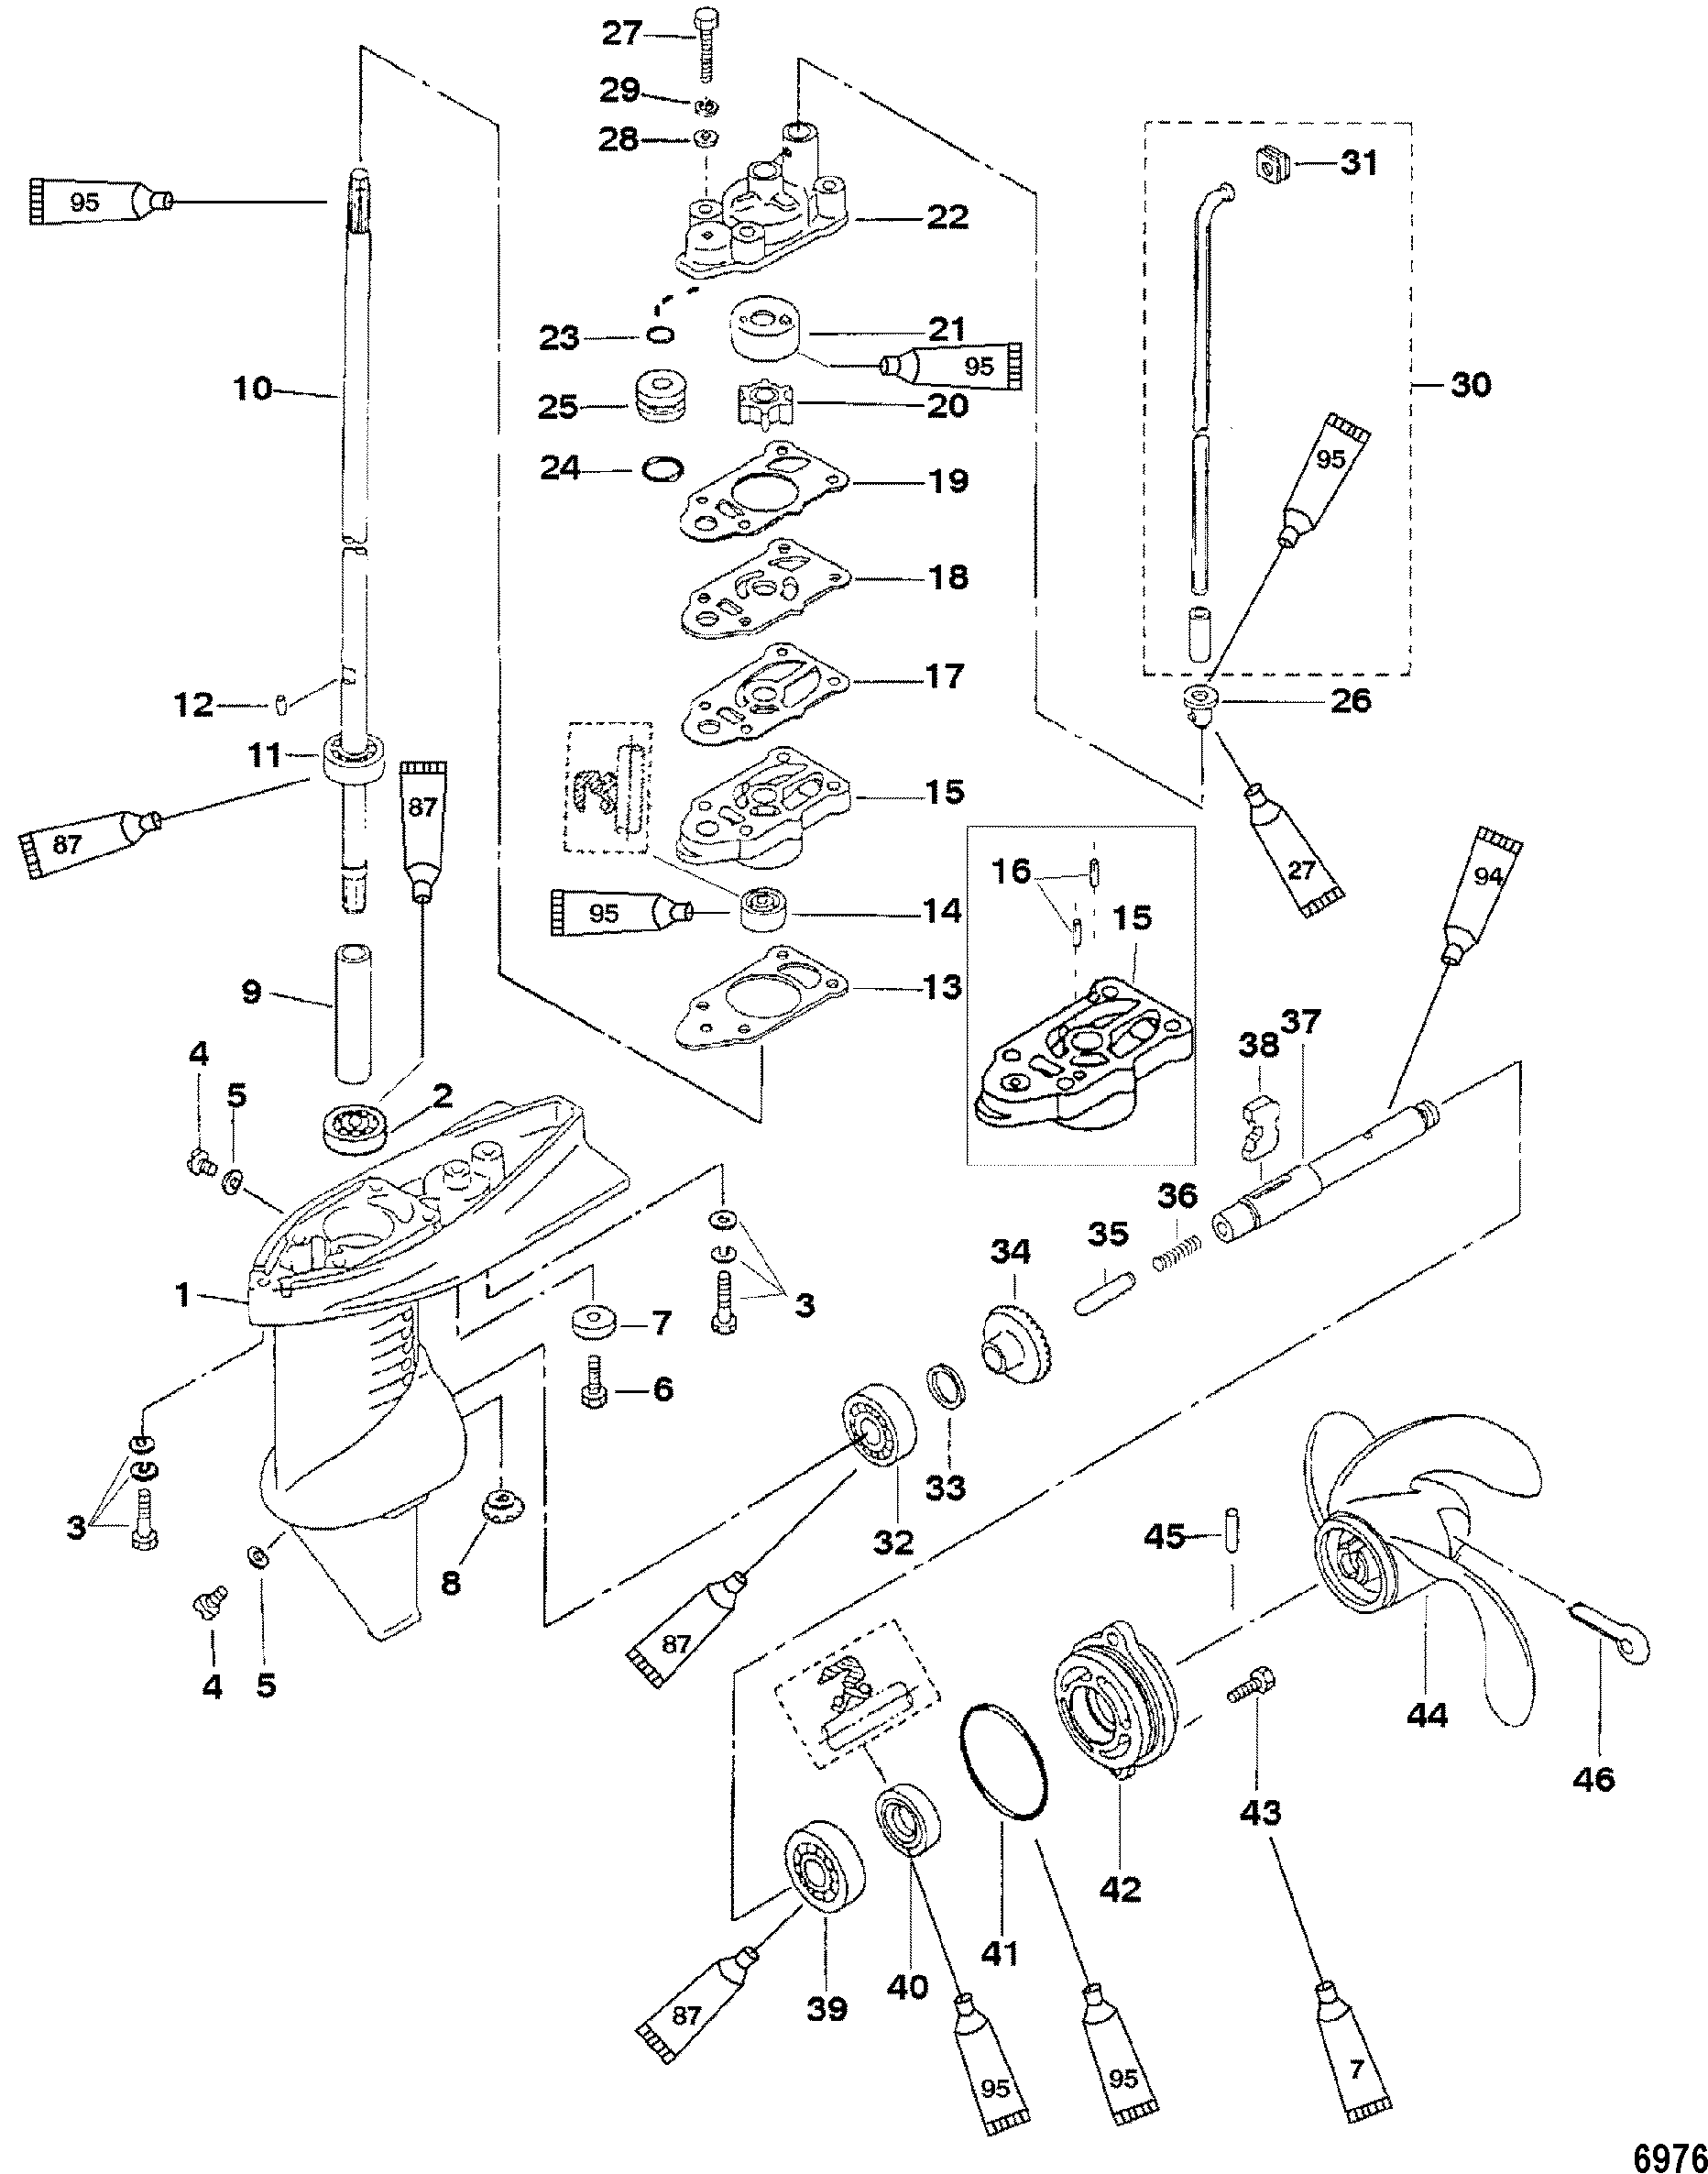 Gear Housing Assembly, 3.3 Horsepower FOR MARINER